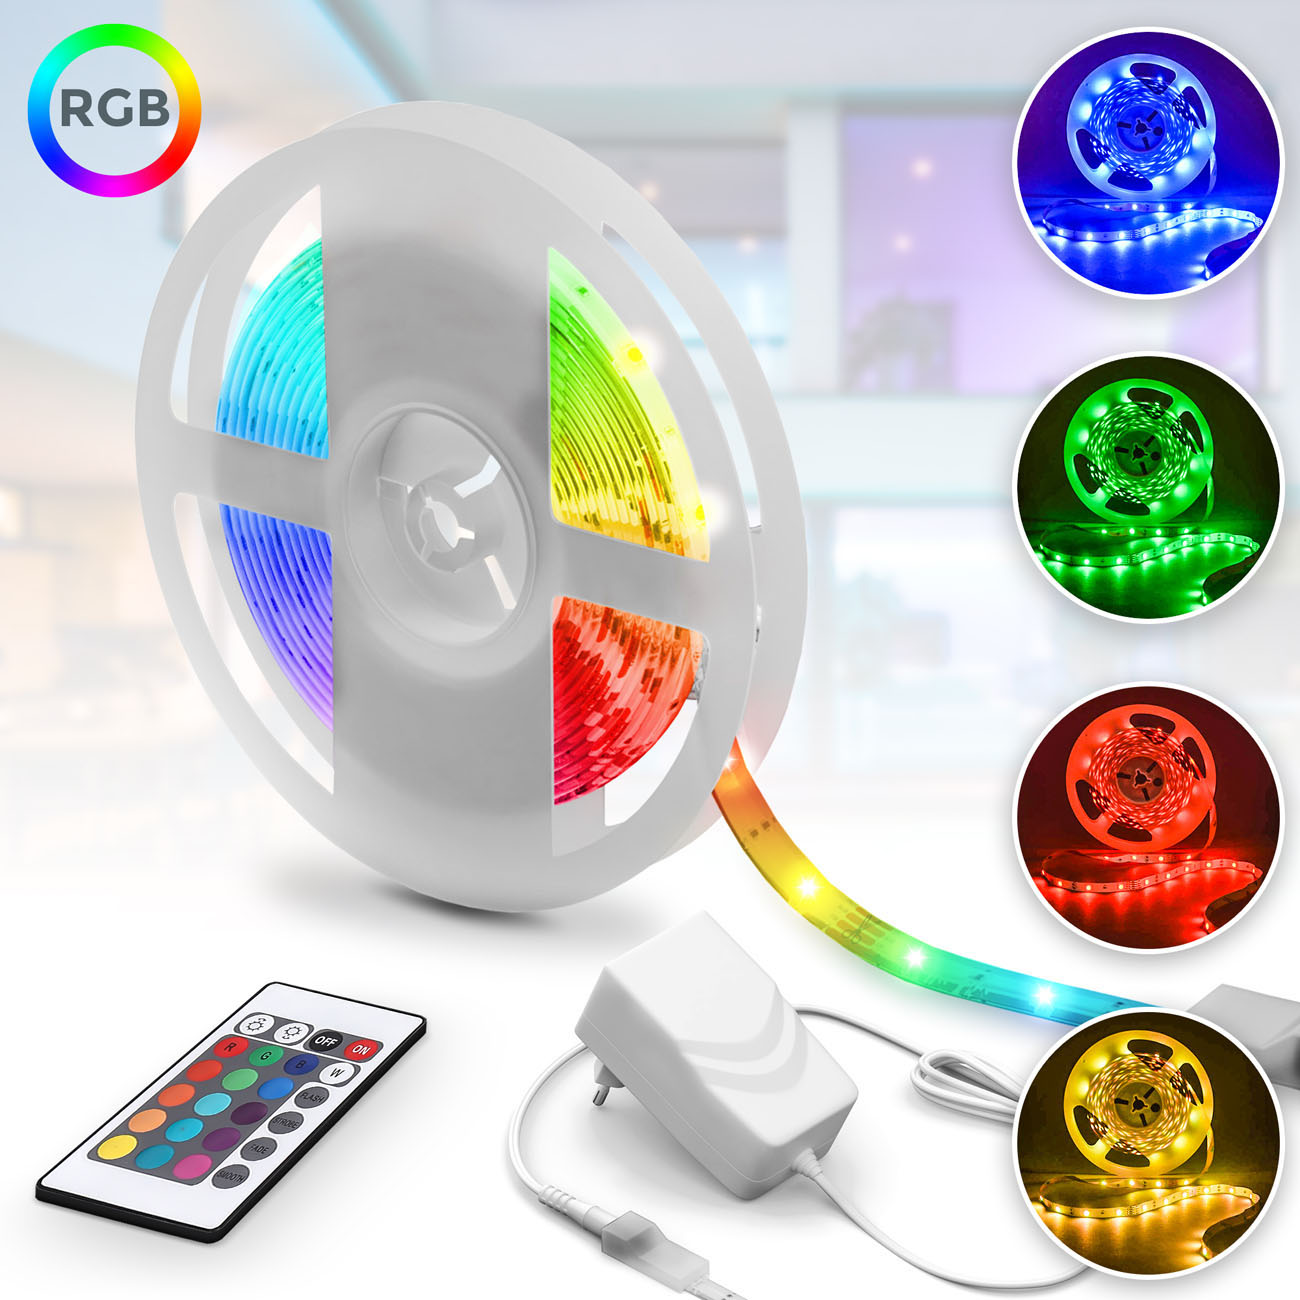 LED Flexband RGB 5m - 3